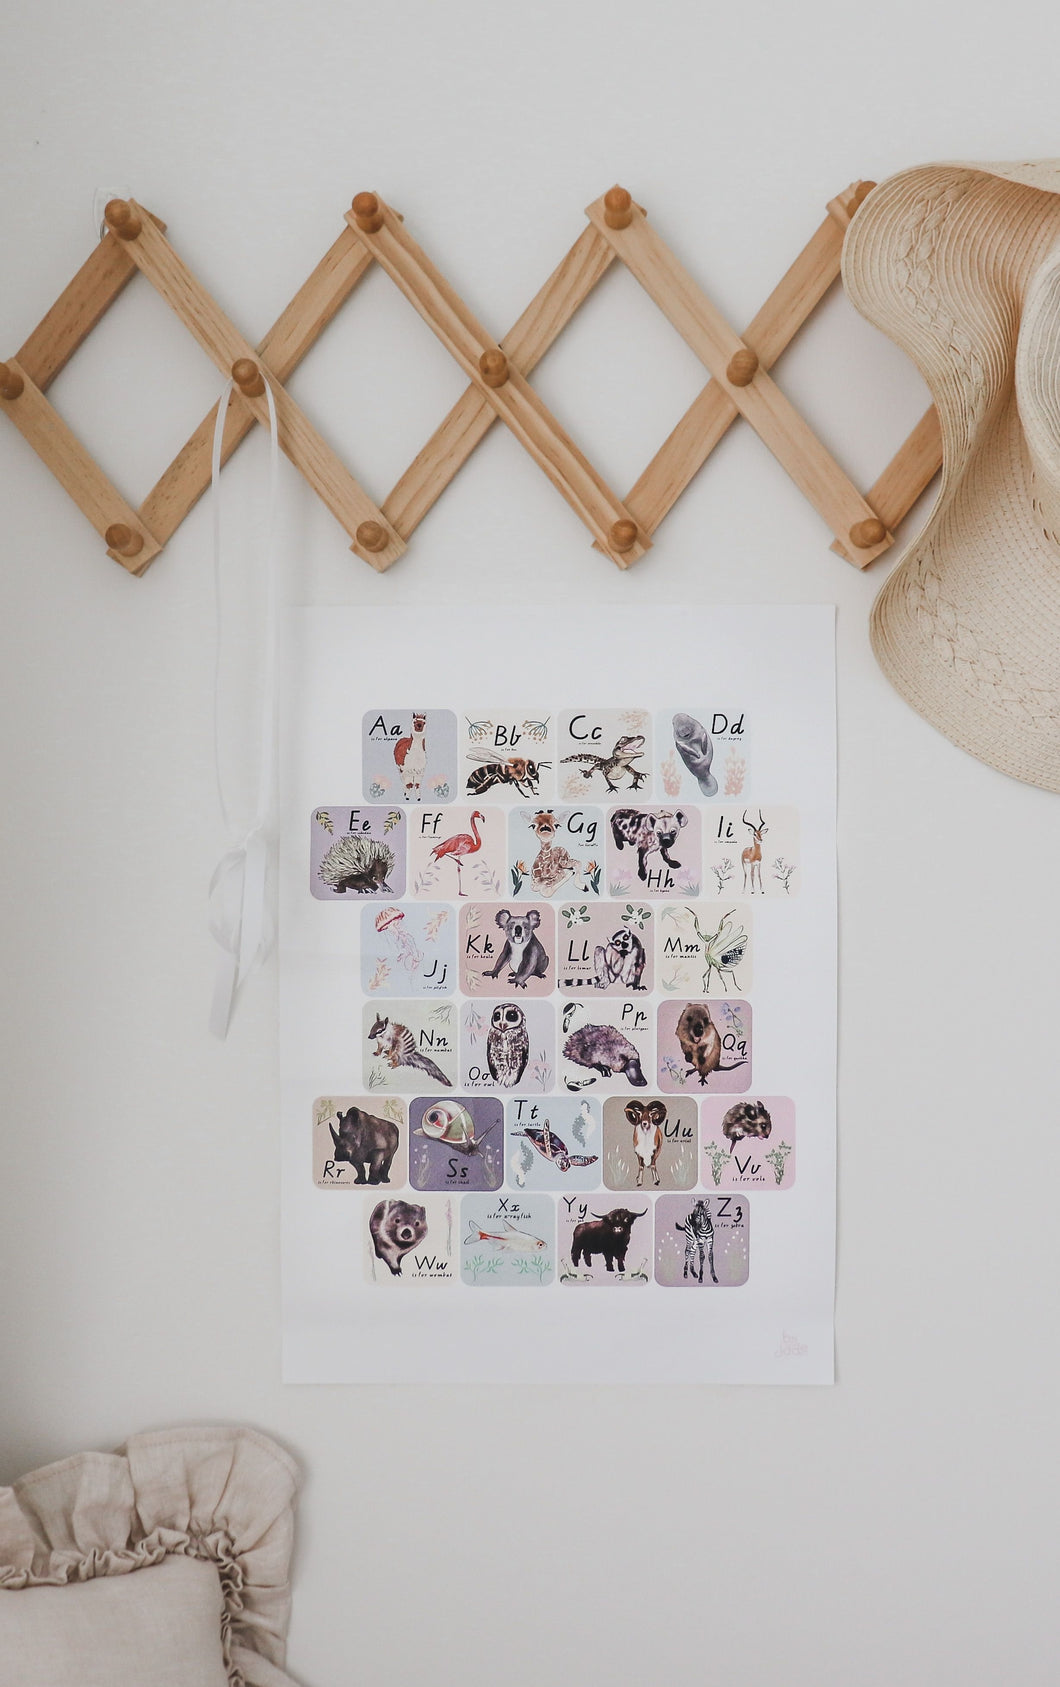 Learn the Alphabet Print